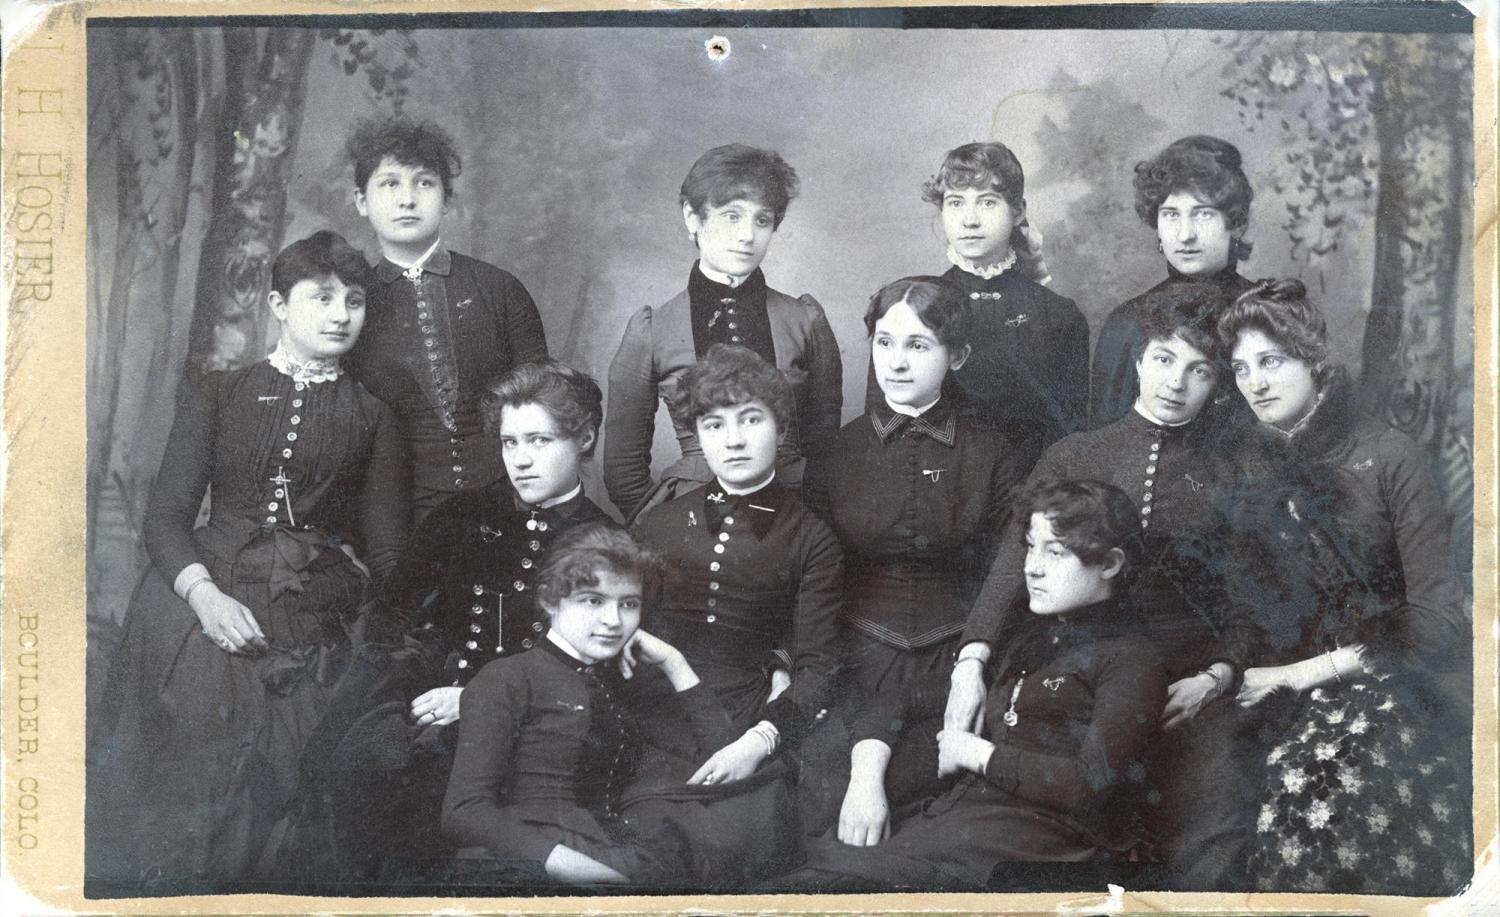 his image from the A. A. and Laurence Paddock collection is of the 1914 Pi Beta Phi Chapter.